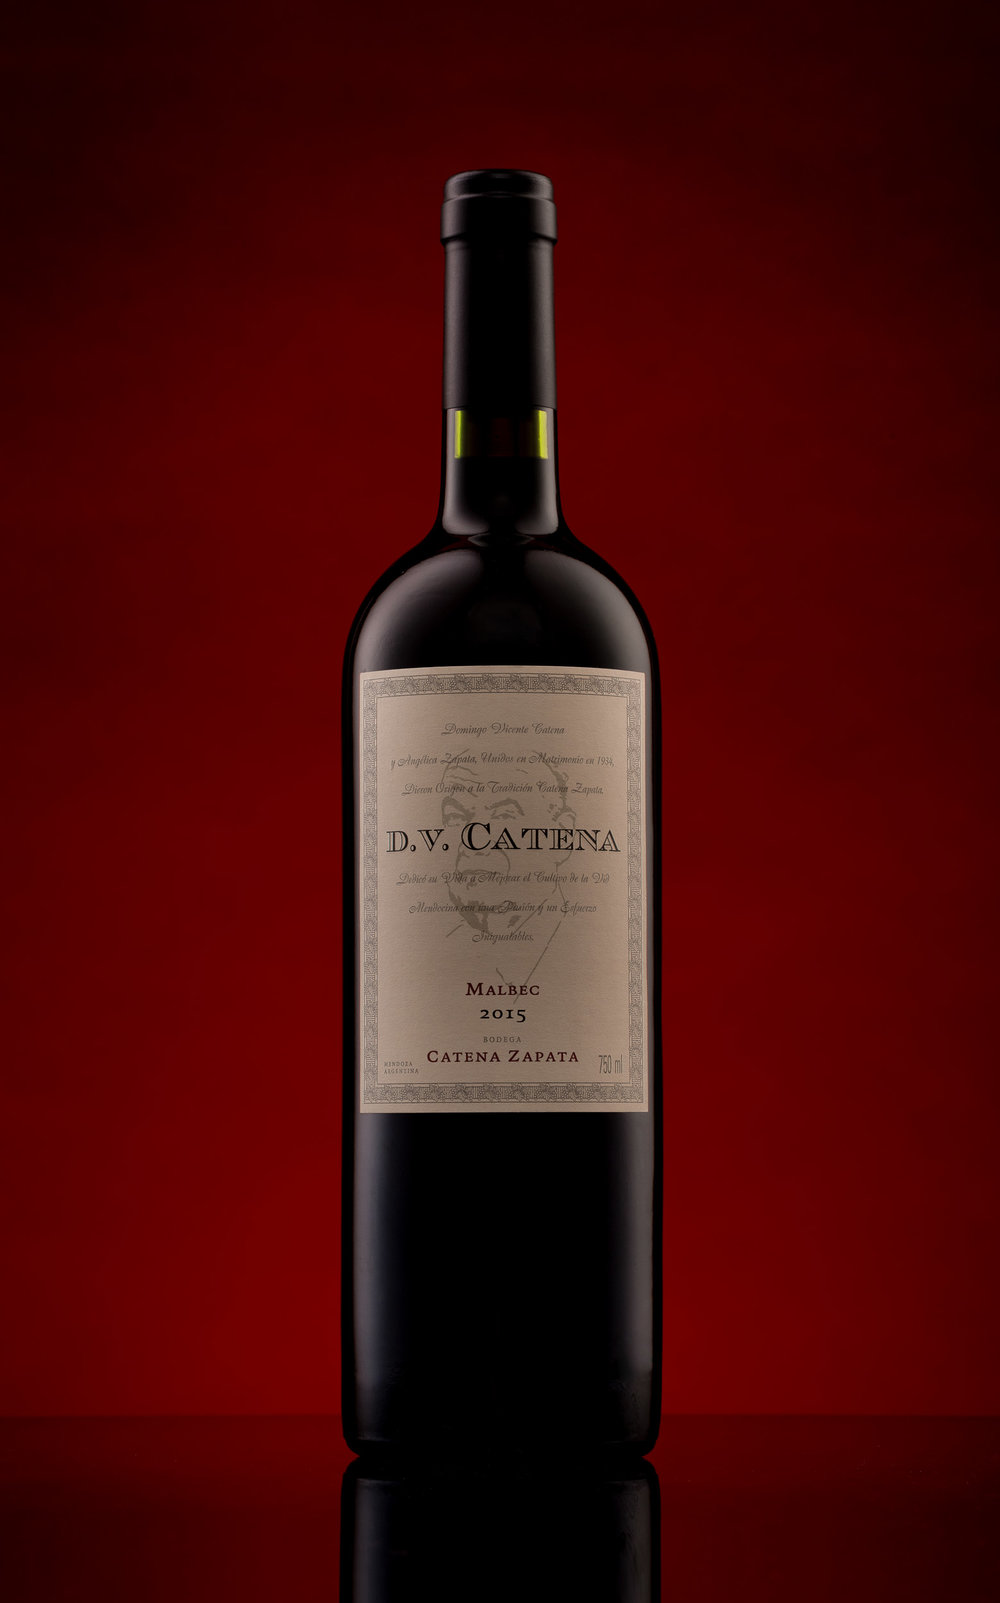 DV Catena Wine Bottle Product Photograph